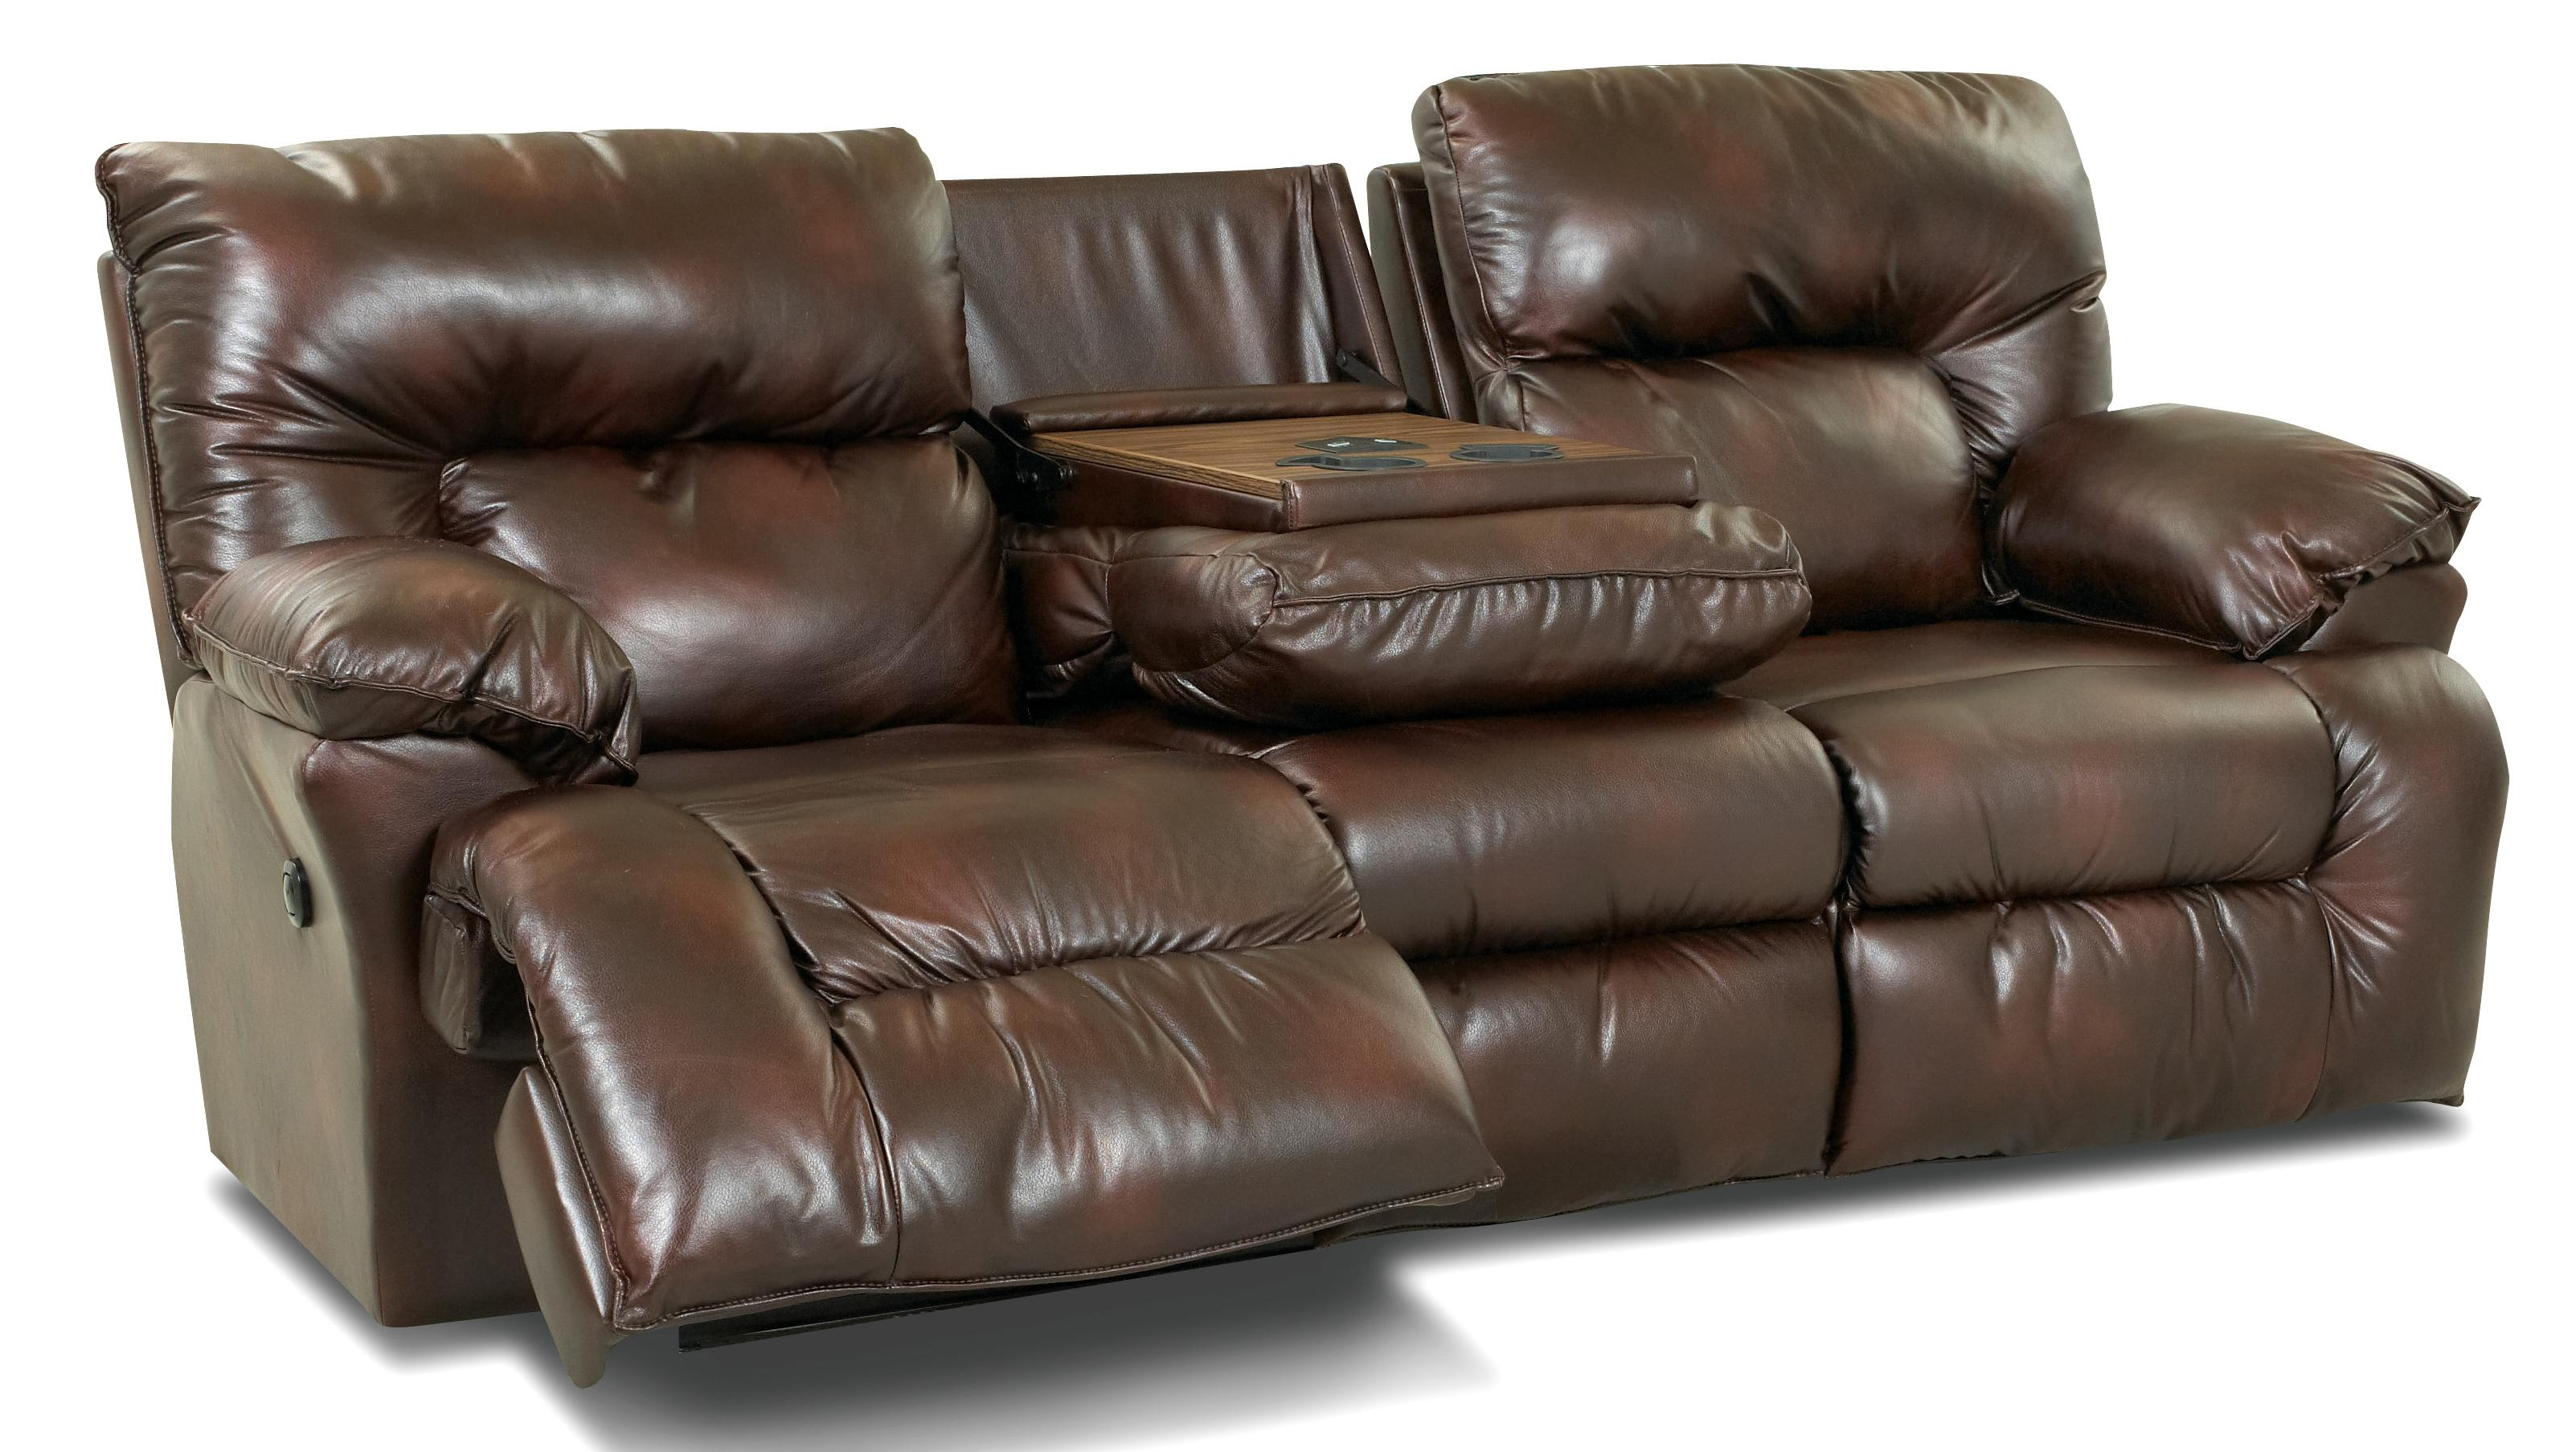 Power Reclining Sofa With Drop-Down Table And Cupholders